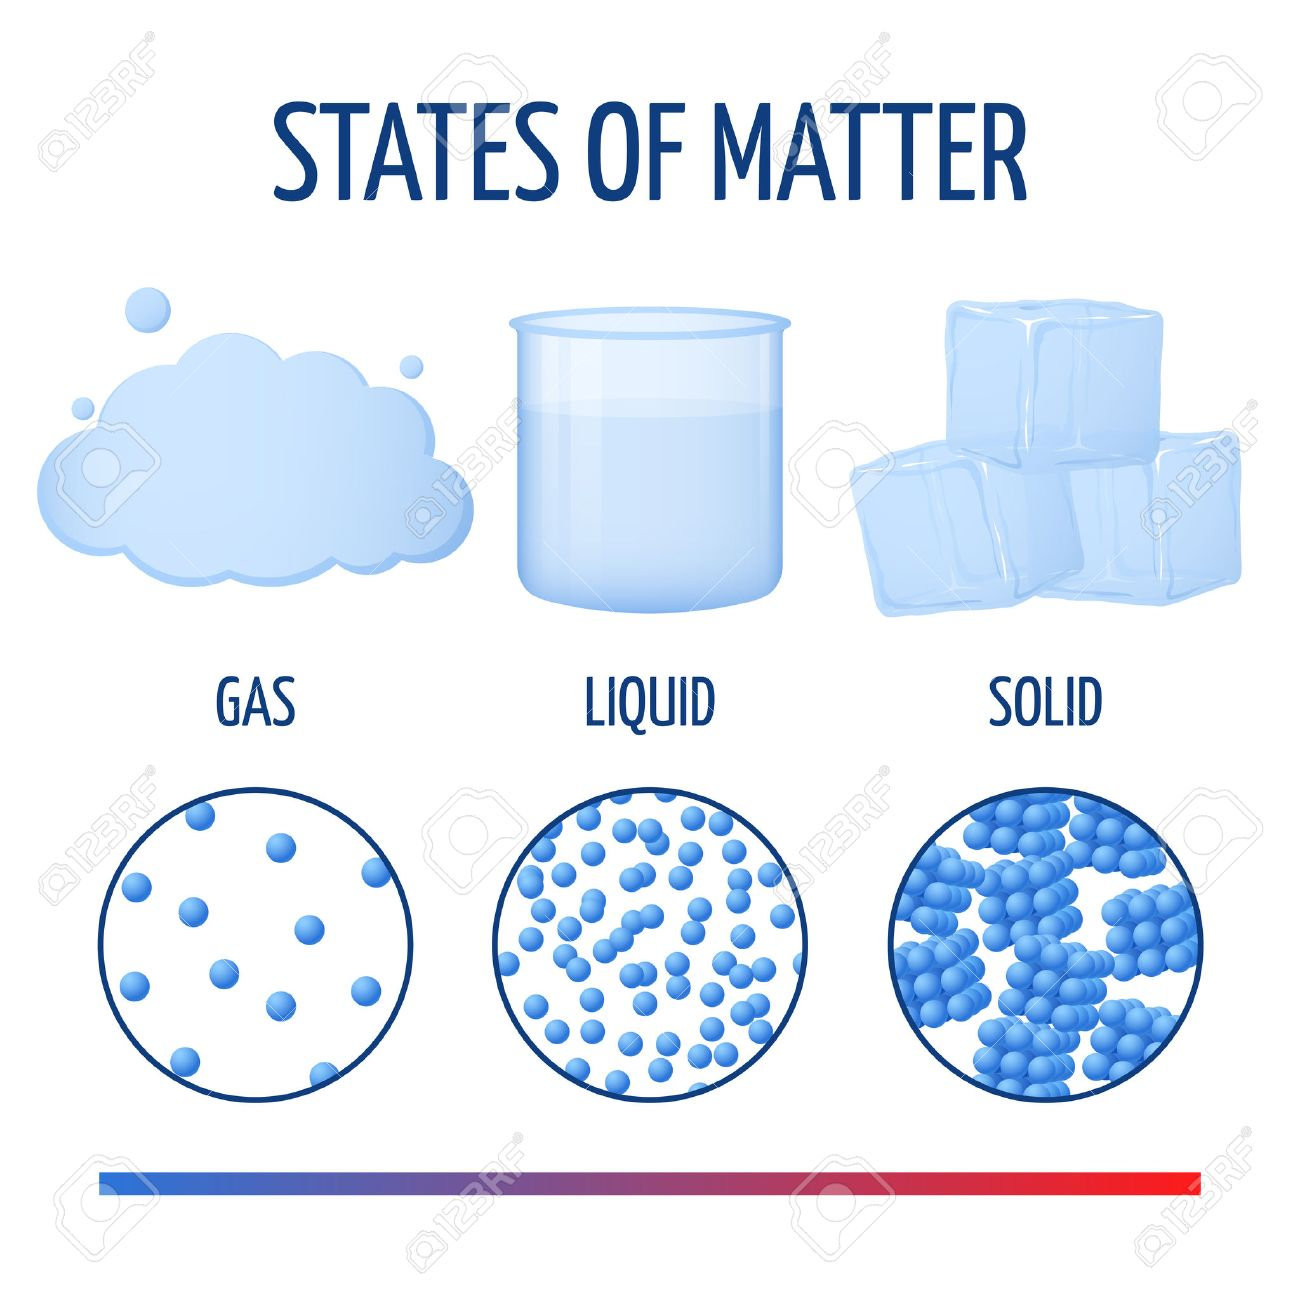 fundamentals states of matter with molecules vector infographics rh 123rf com gas state of matter clipart States of Matter Gas